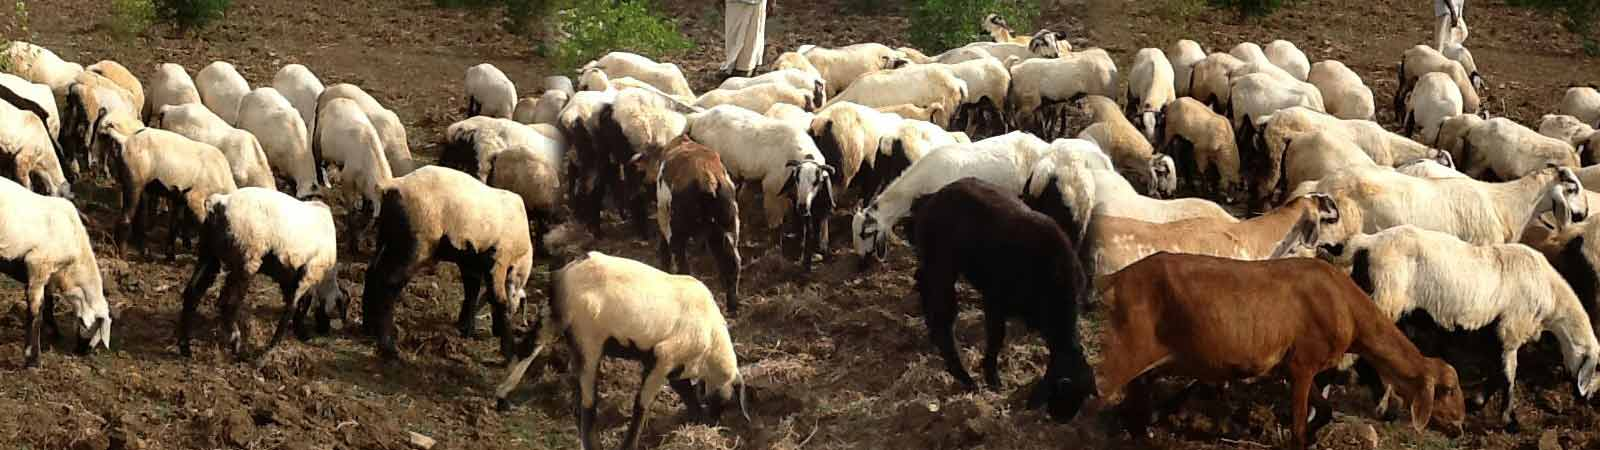 Sheep and goat farming